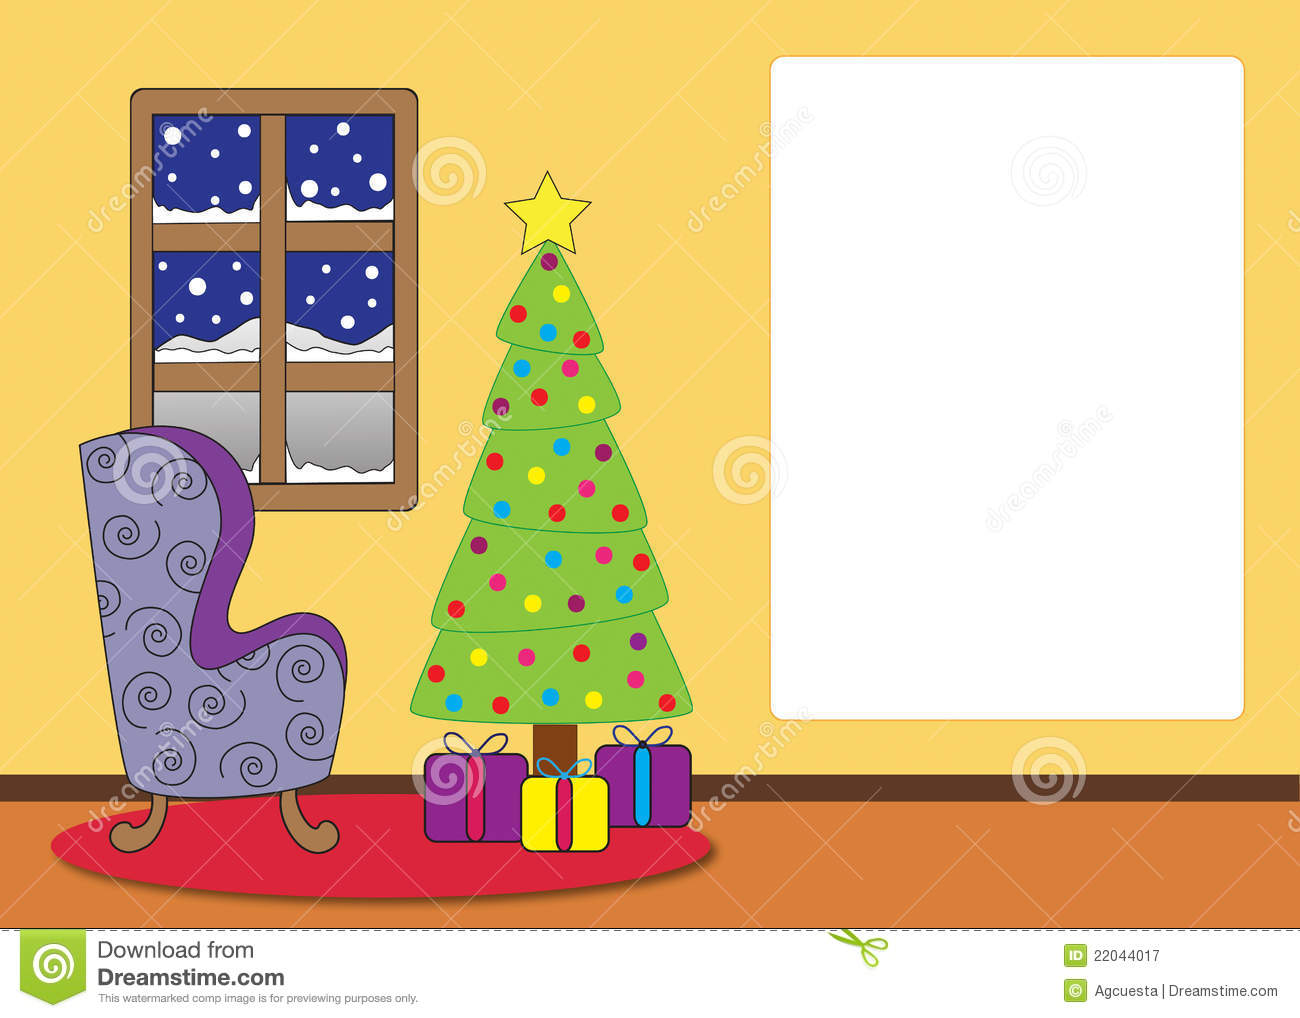 Wohnzimmer Cartoon Christmas Living Room Cartoon Stock Illustration Image